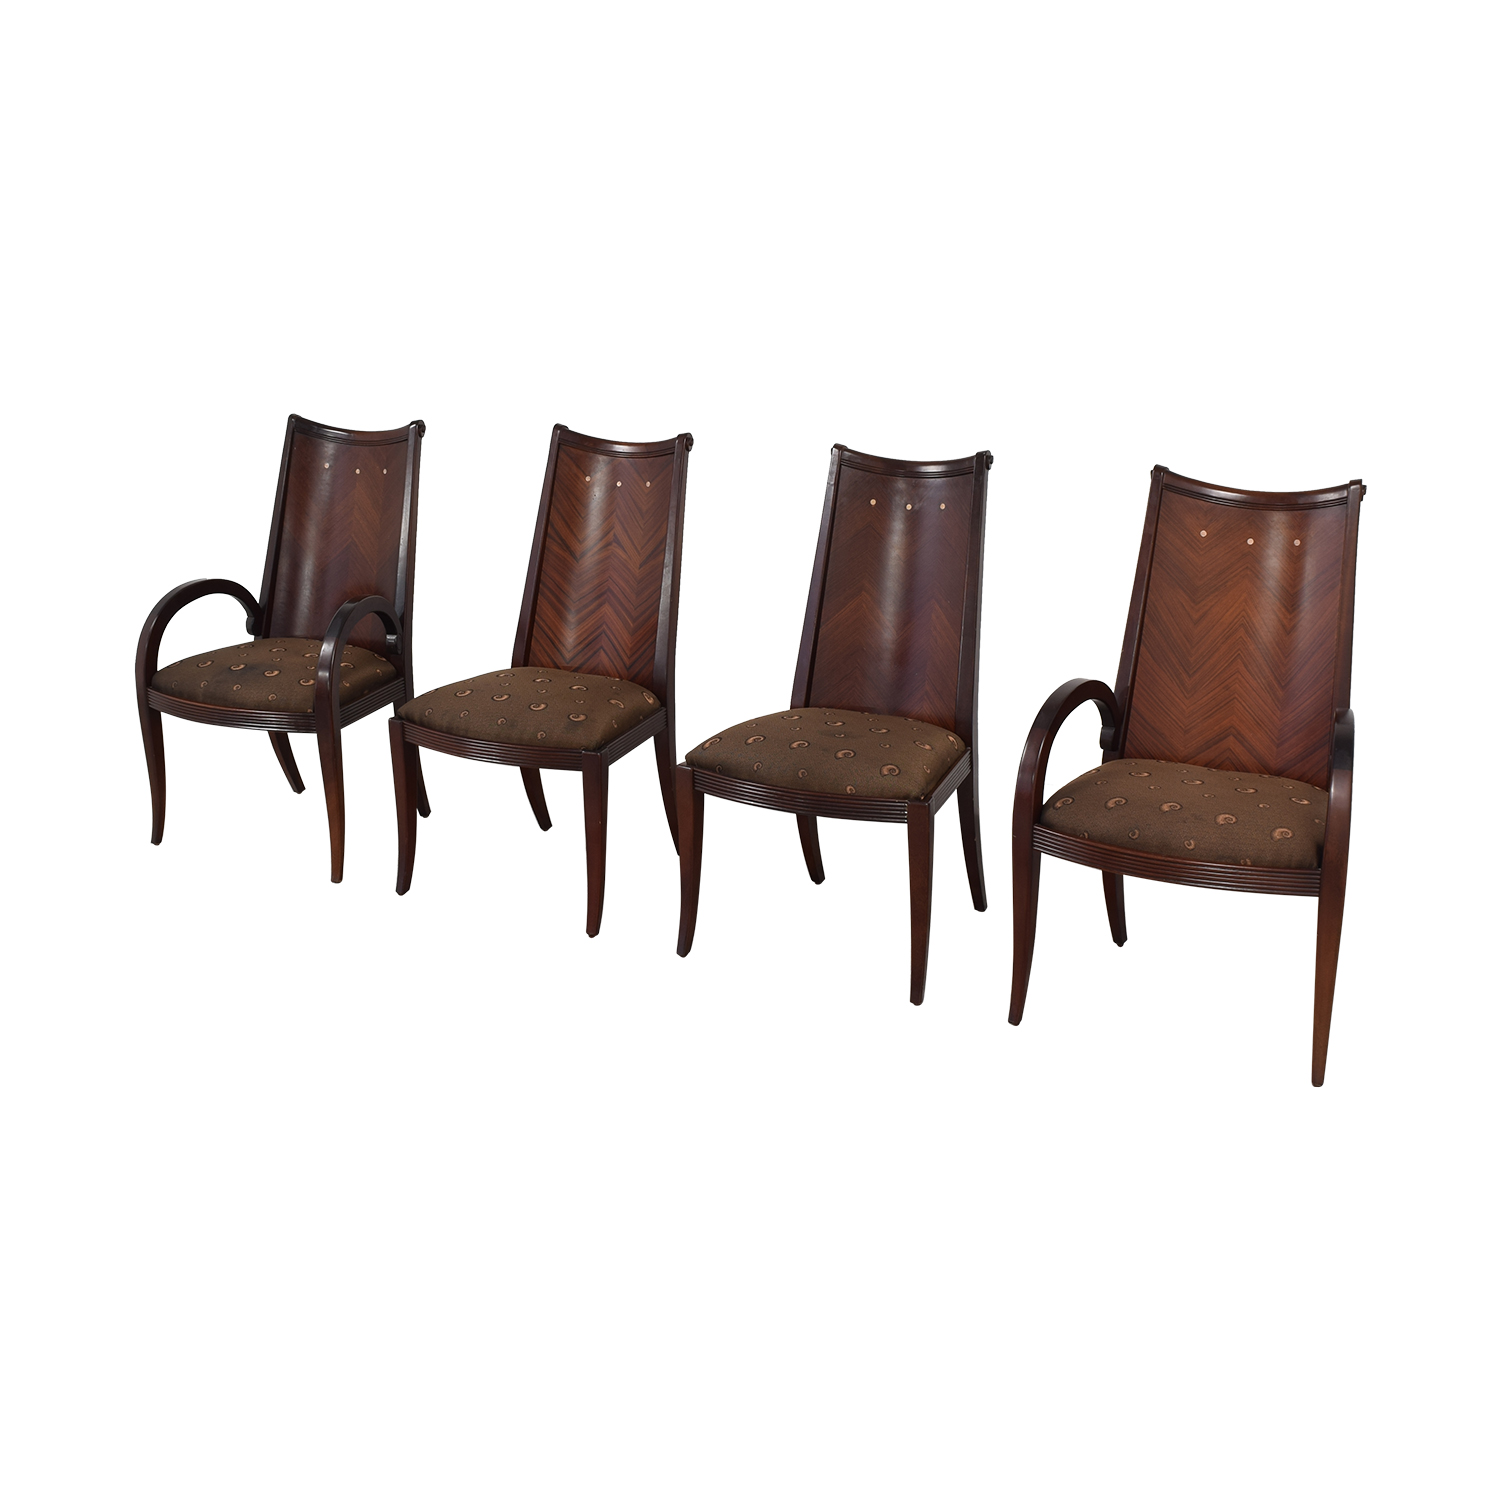 Upholstered Dining Chairs dark brown